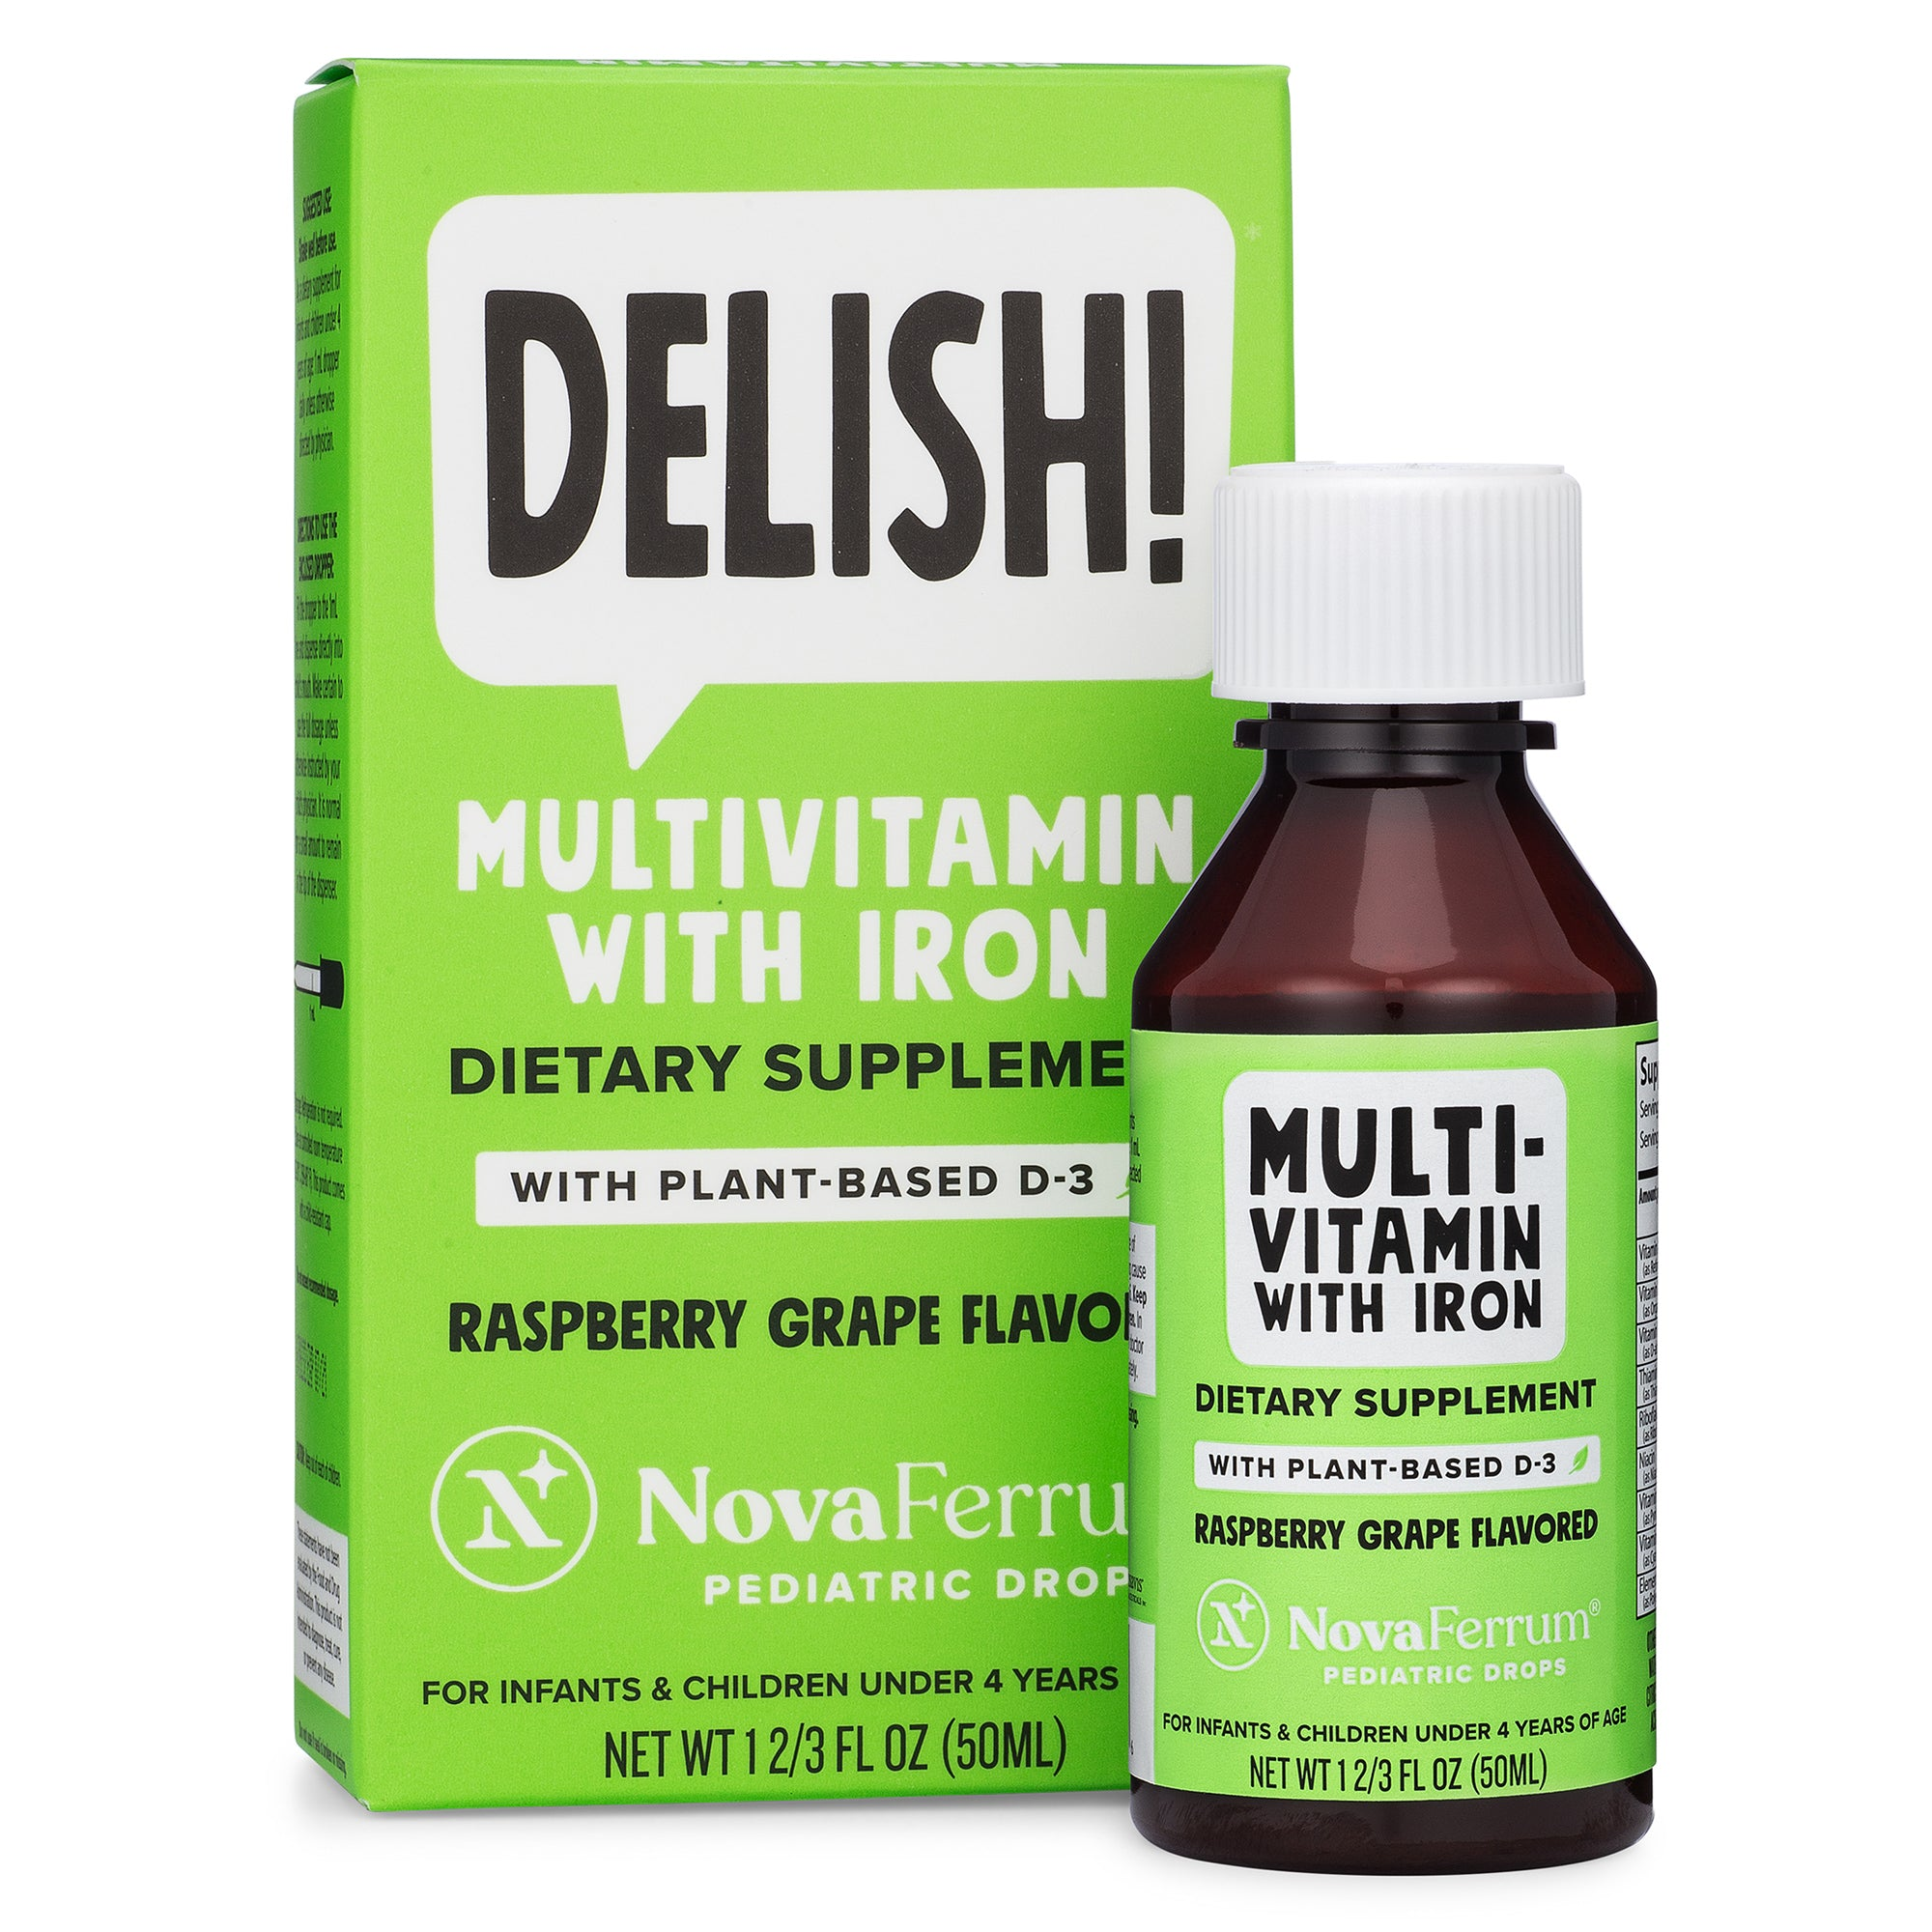 NovaFerrum Vegan Multivitamin with Iron Pediatric Drops (Organic Plant-Based D3) (2 FL OZ)